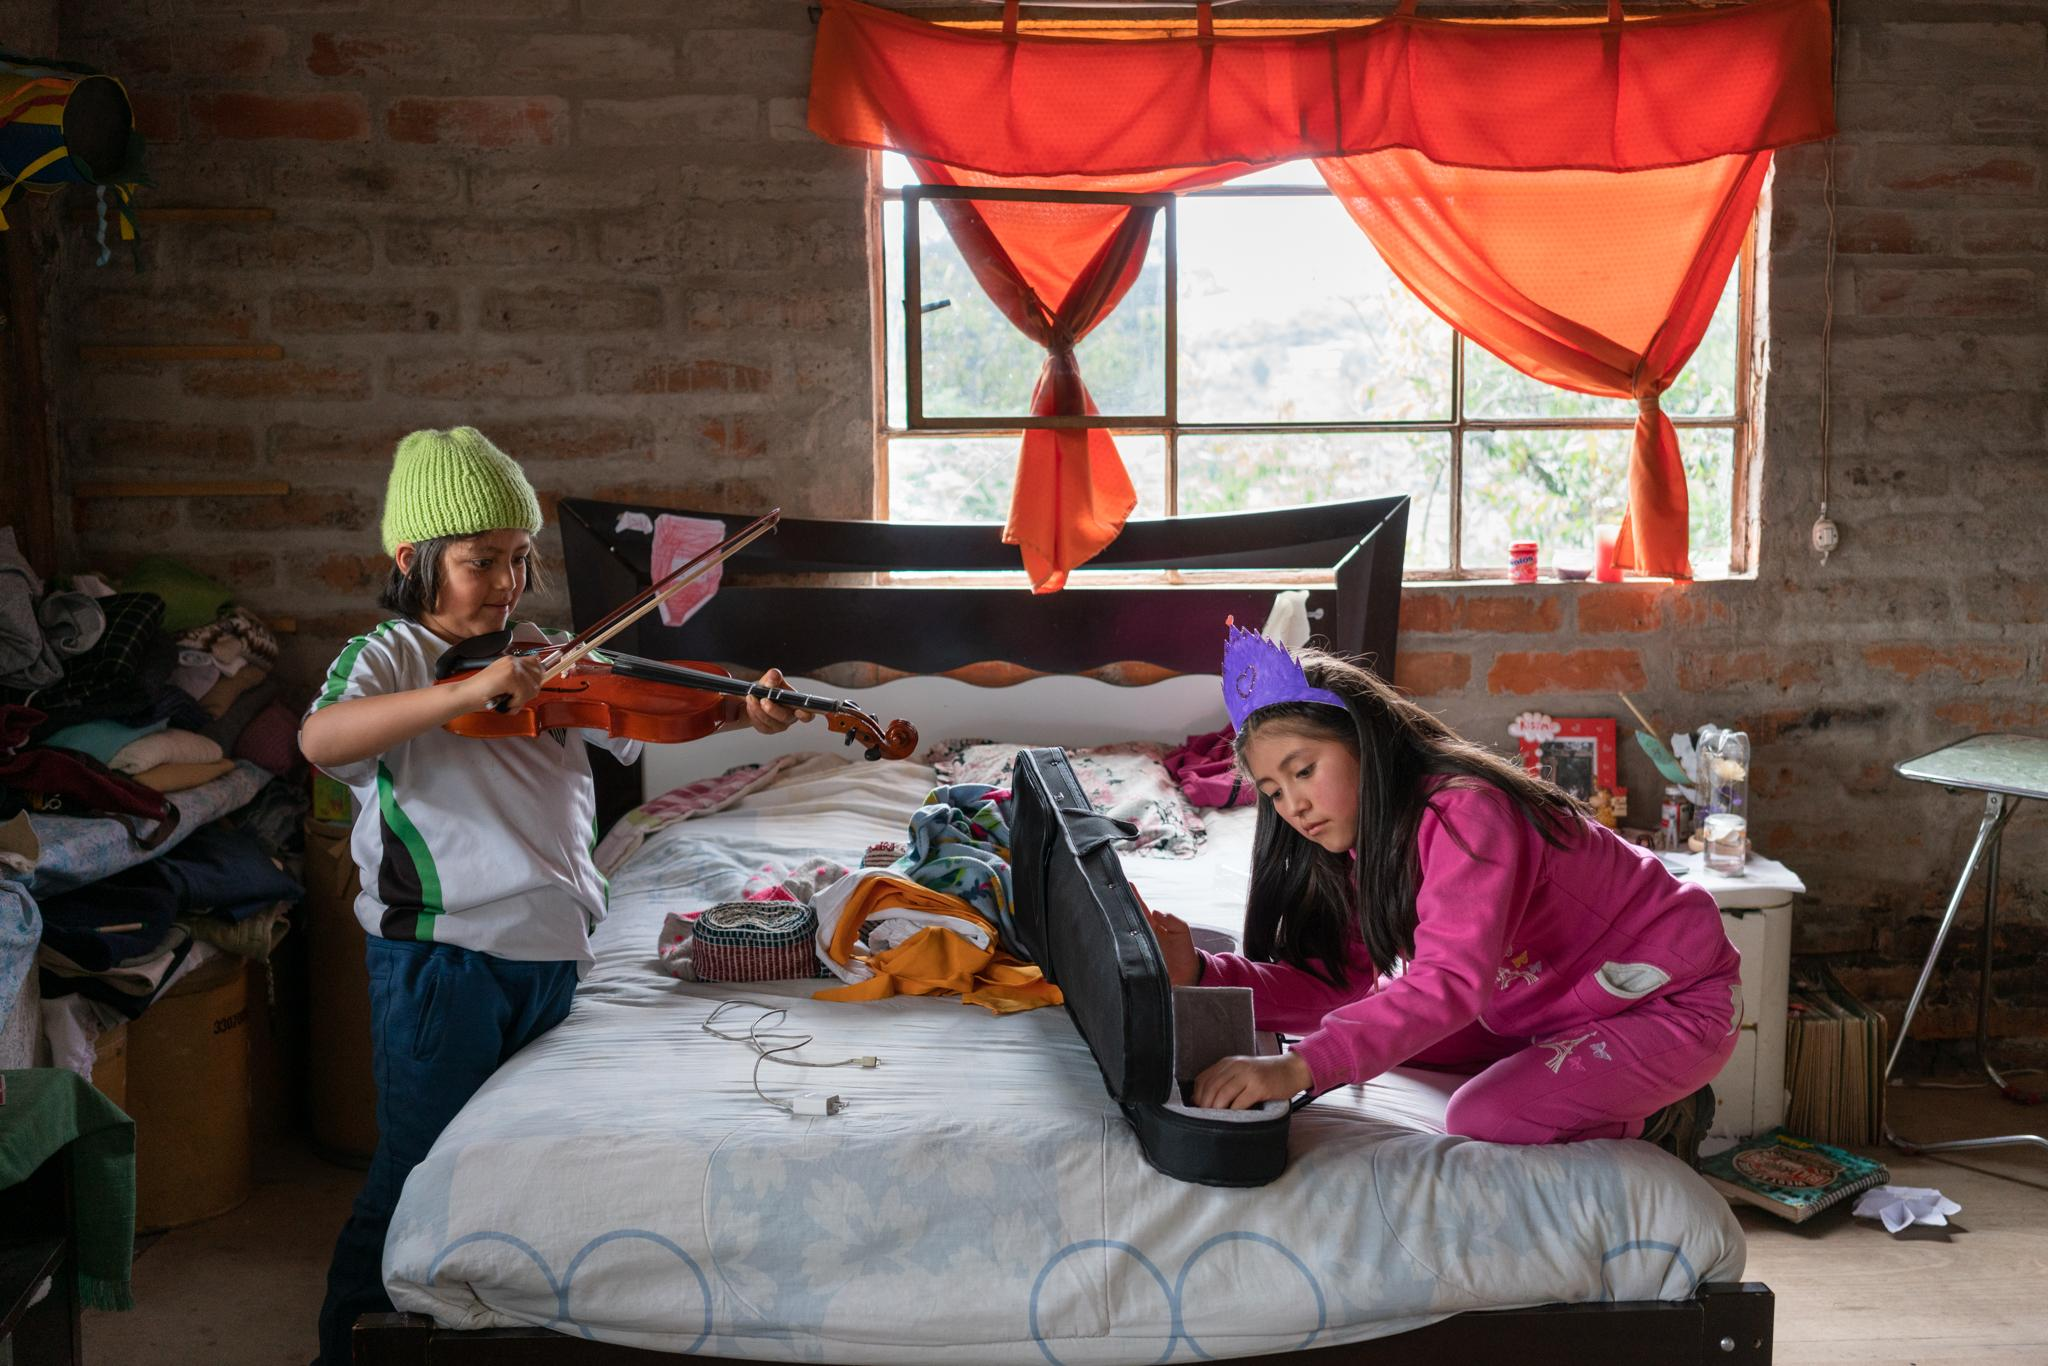 Jasid plays the violin that his parents recently bought for his sister Suri. Parents comment that they have made a financial effort to give this gift to Suri. Jasid Taquiri Aguayo (7) and Suri Laina Aguayo (10) are elementary school students of the Yachay Wasi Intercultural Bilingual Community School. Located south of Quito in Ecuador. They live with her sister Arelí (14), her mother Dina Taco (39) and her father Juan Andrés Aguayo (34). They live in a big house, their grandparents are their neighbors, and they have a big garden full of plants and some trees. Her parents say that at the beginning of the quarantine it was more fun for the children, but nowadays they are missing going to school and sharing with their classmates. Dina studies Infant Education at distance, this has given her tools to closely accompany her children's studies during the confinement. She has created routines for children to make better use of time; at 8:30 they do exercises and dance in the patio, until 11:30 they do their homework, then they play and they also collaborate in certain household responsibilities. They are a family with limited financial resources, the Covid19 has left the parents without work, however, they can have the support of the grandparents. They are a family with a broad vision of social work. Photographer: Ana Maria Buitron. Quito, Ecuador. Jasid toca el violín que sus padres le compraron hace poco a su hermana Suri. Los padres comentan que han hecho un esfuerzo económico para darle este regalo a su hija. Jasid Taquiri Aguayo (7) y Suri Laina Aguayo (10) son estudiantes de primaria de la Escuela Comunitaria Intercultural Bilingüe Yachay Wasi. Ubicada al sur de Quito en Ecuador. Viven con su hermana Arelí (14), su madre Dina Taco (39) y su padre Juan Andrés Aguayo (34). Viven en una casa grande, sus abuelos son sus vecinos y tienen un jardín grande lleno de planta y algunos árboles. Sus padres cuentan que al inicio de la cuarentena era más divertido